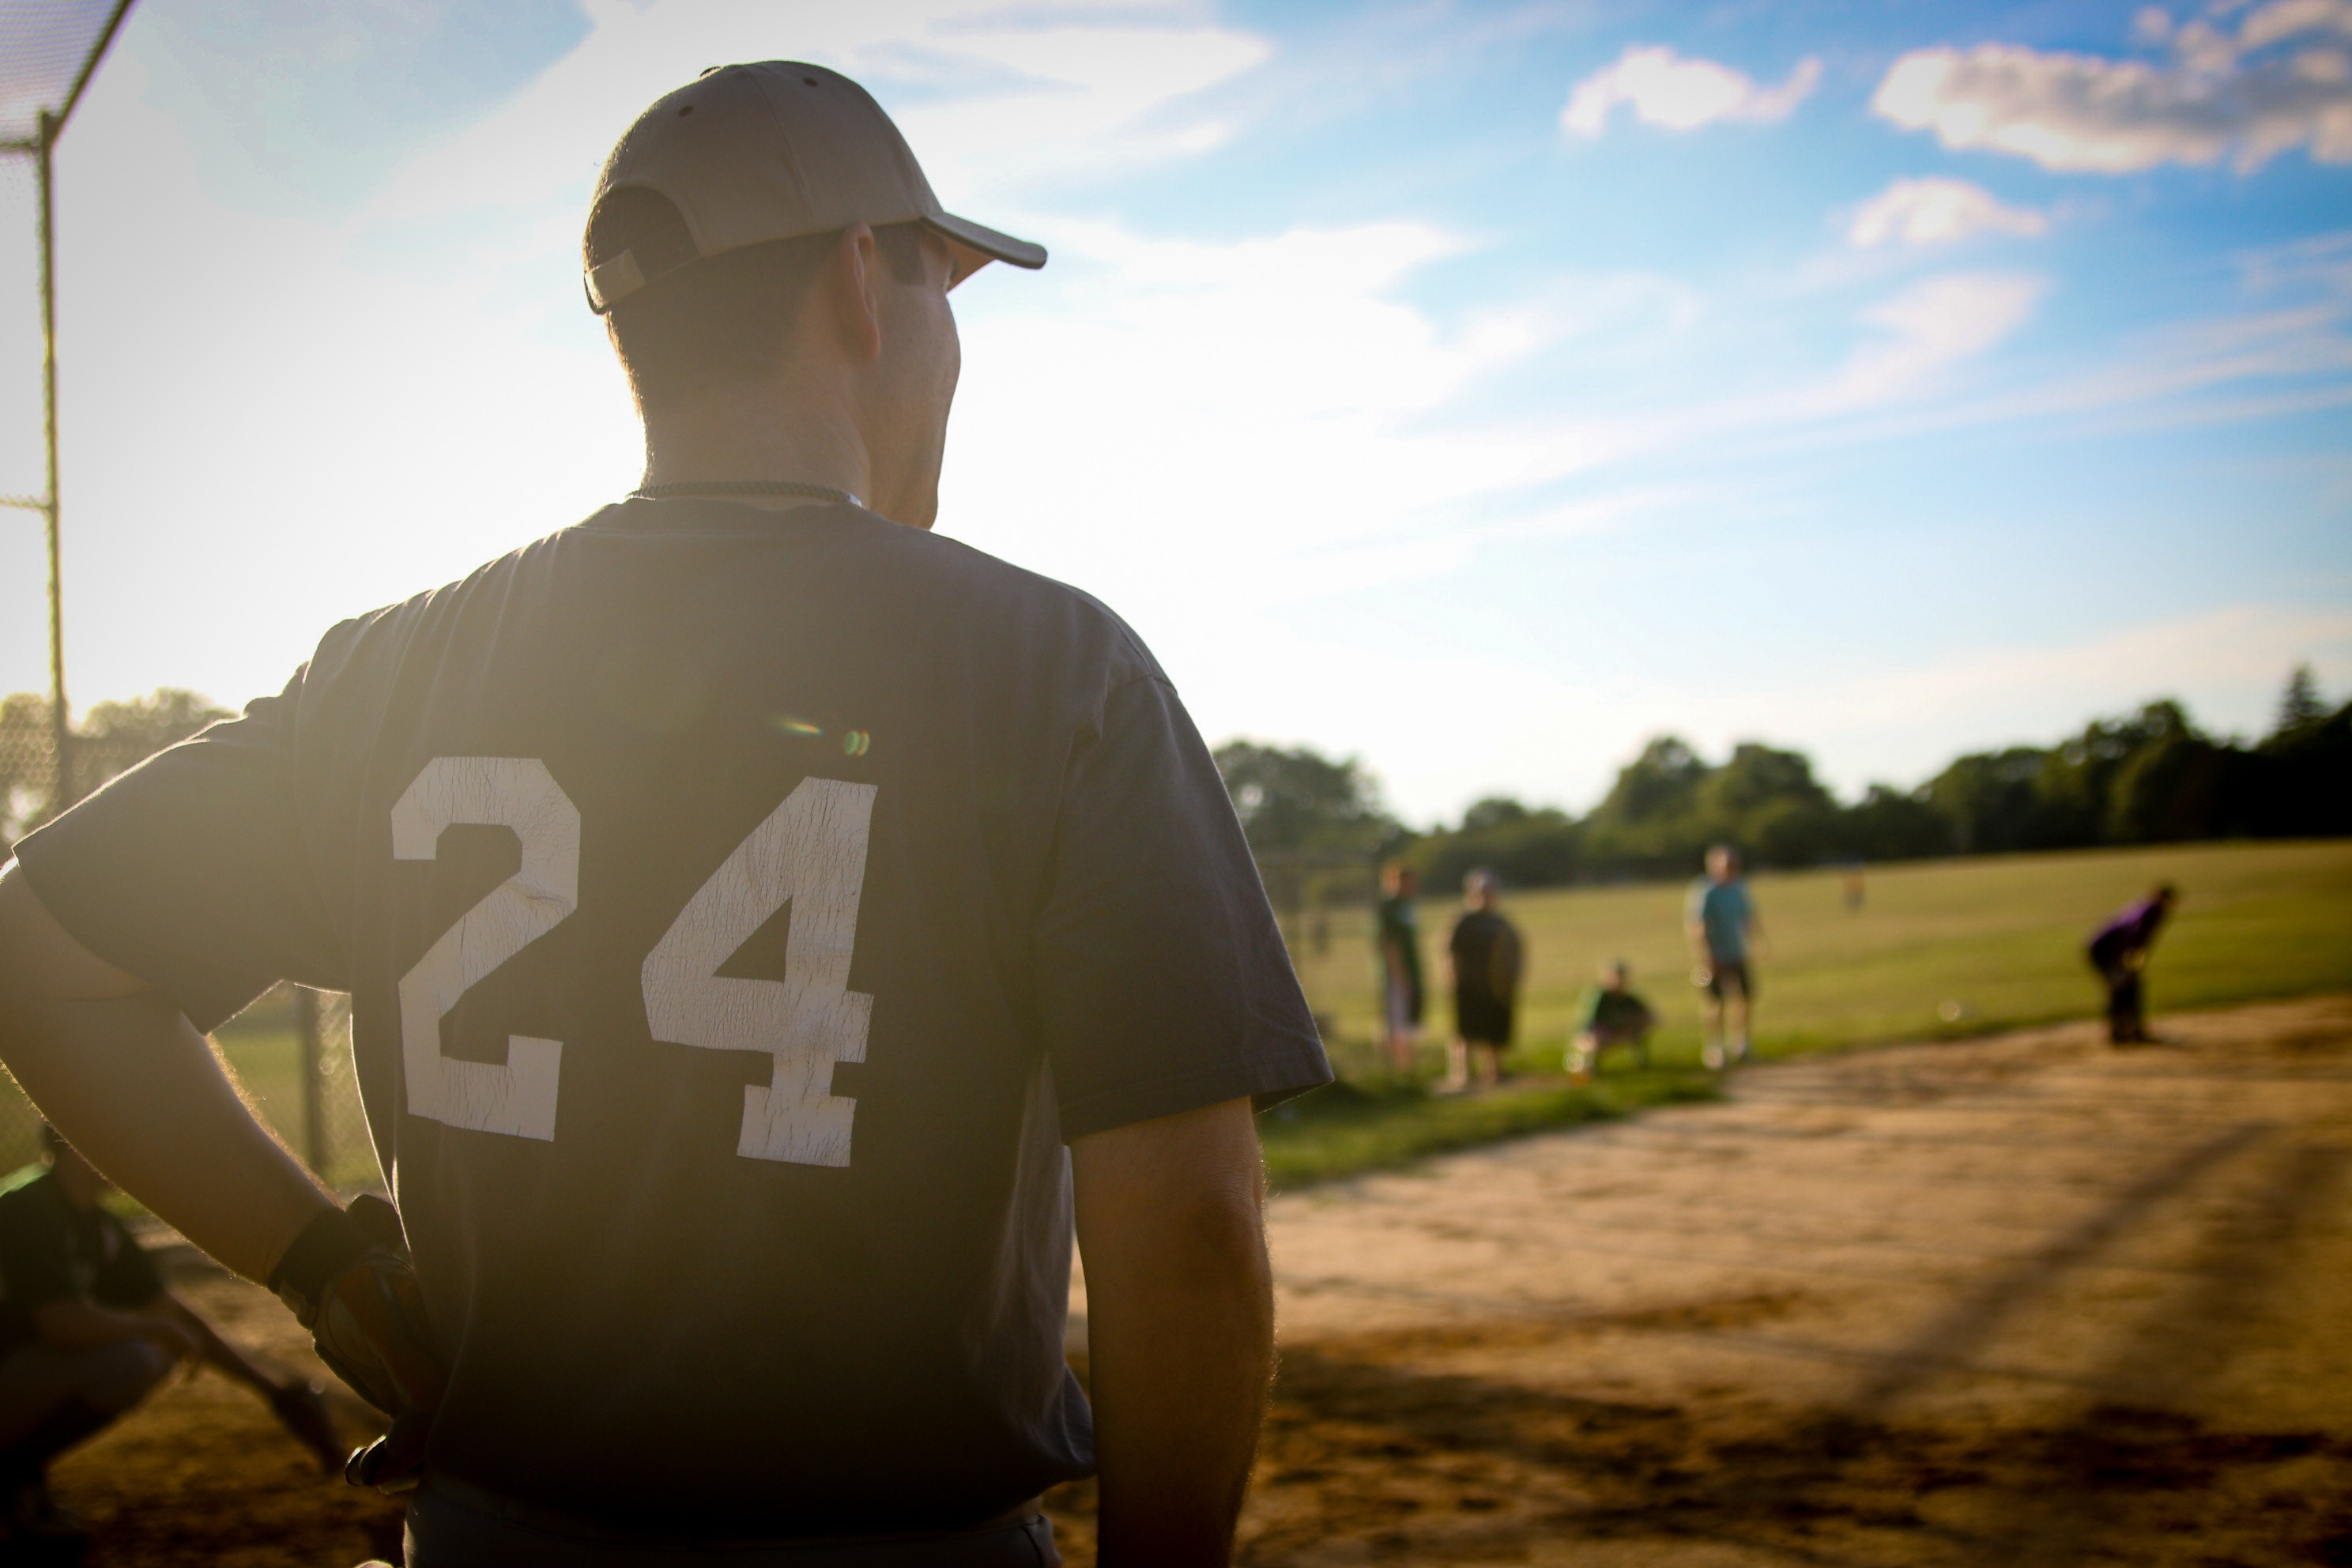 Considering coaching fees when budgeting for youth sports